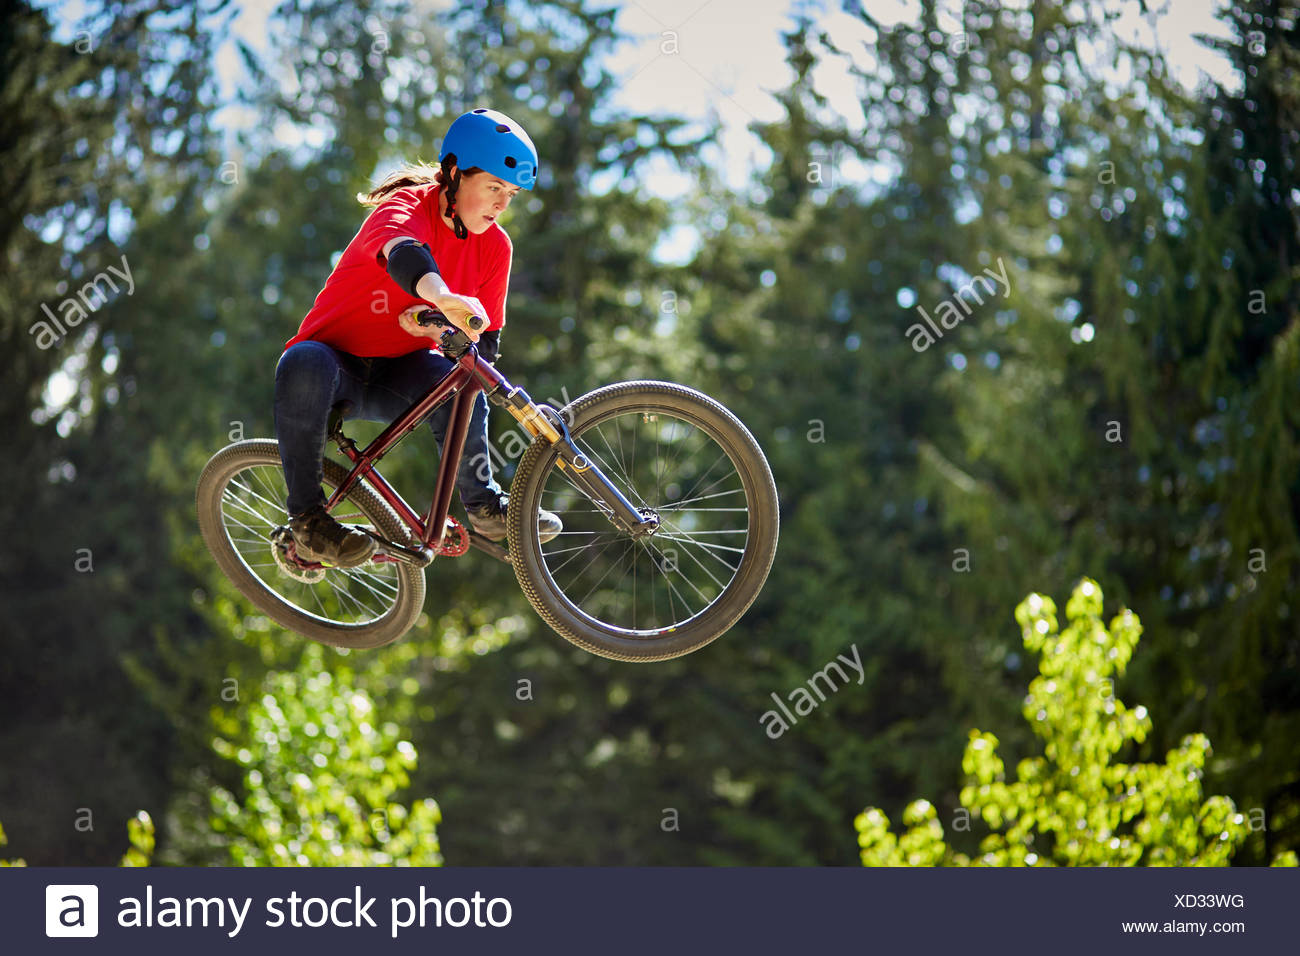 Young female bmx biker jumping mid air in forest - Stock Image